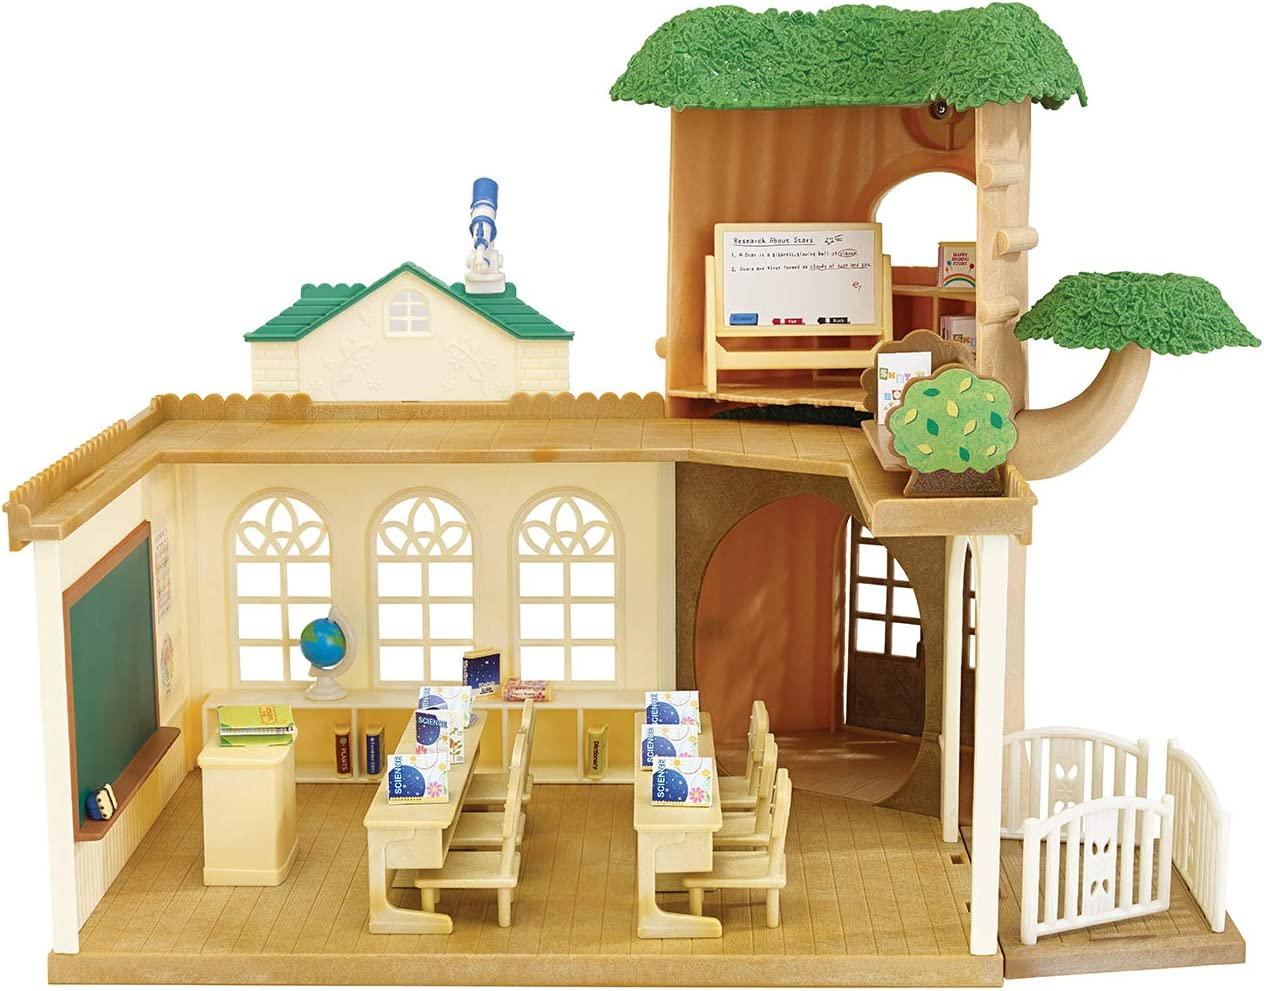 Top 15 Best Calico Critters (2020 Reviews & Buying Guide) 15